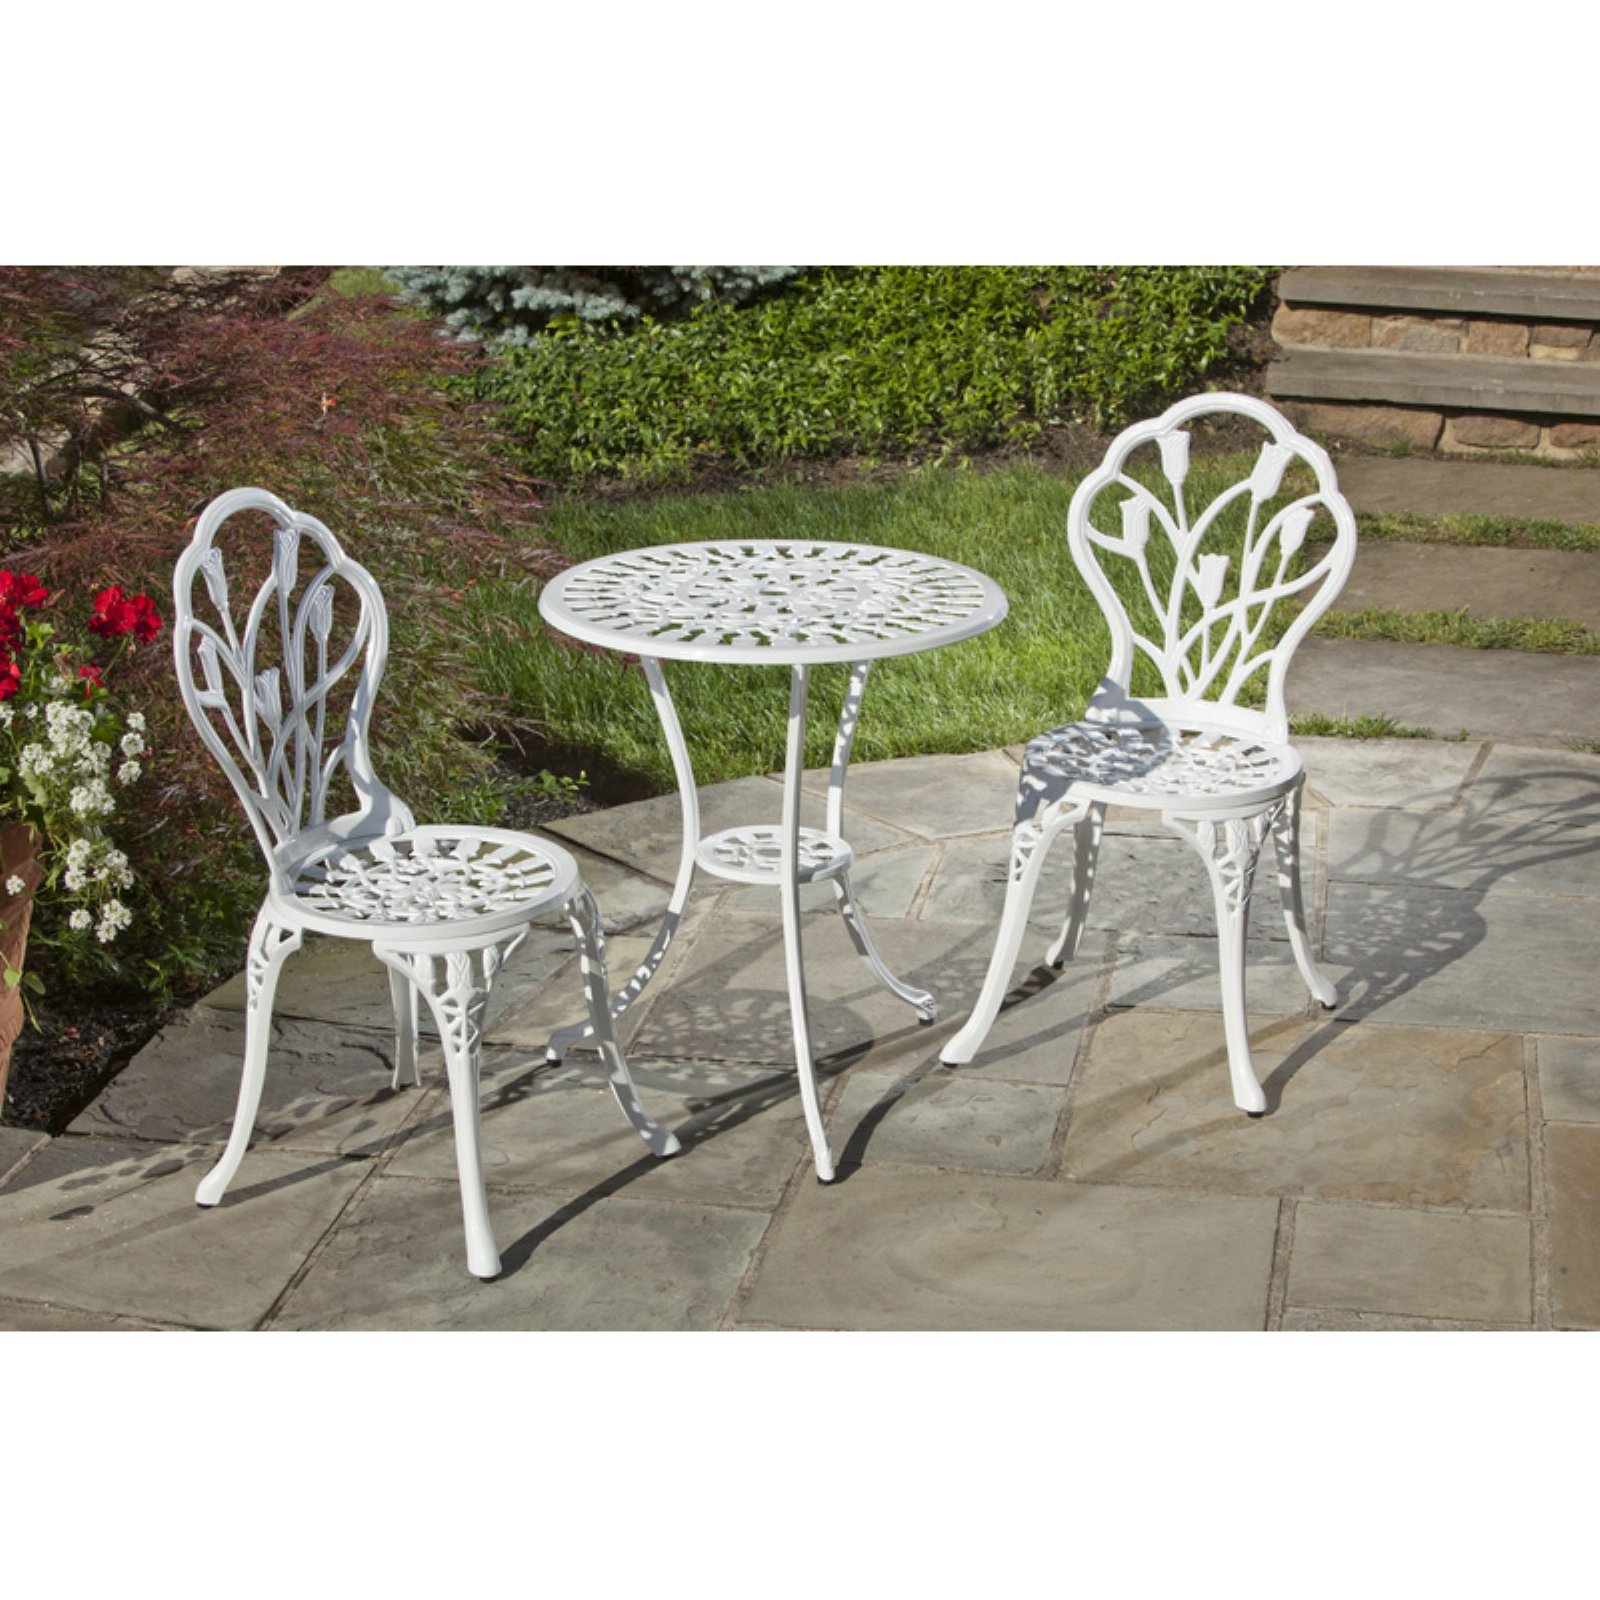 Alfresco Tulipano 23.75 in. Round Bistro Set